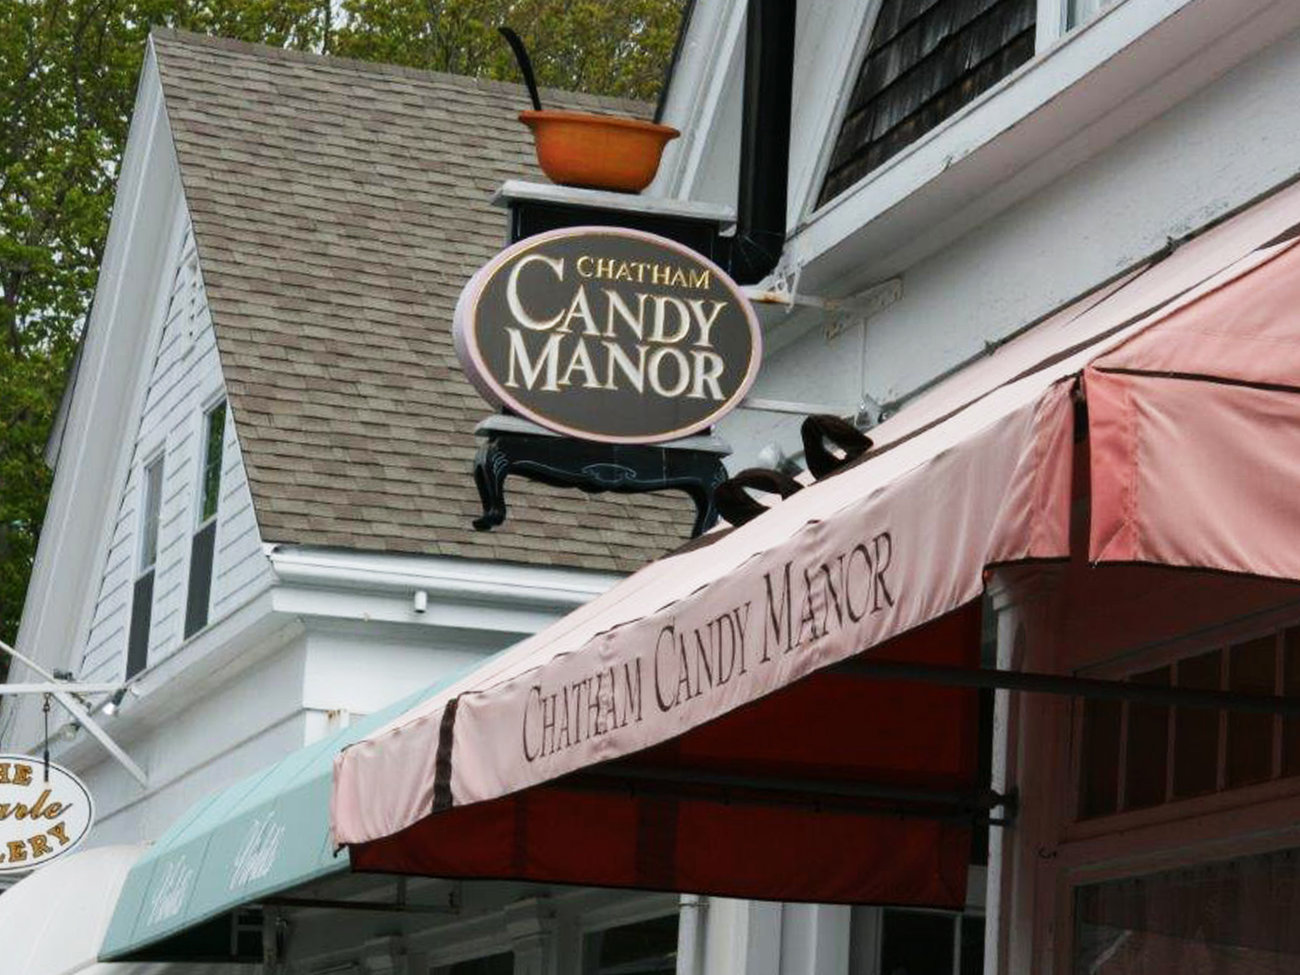 Chatham Candy Manor Store in Cape Cod